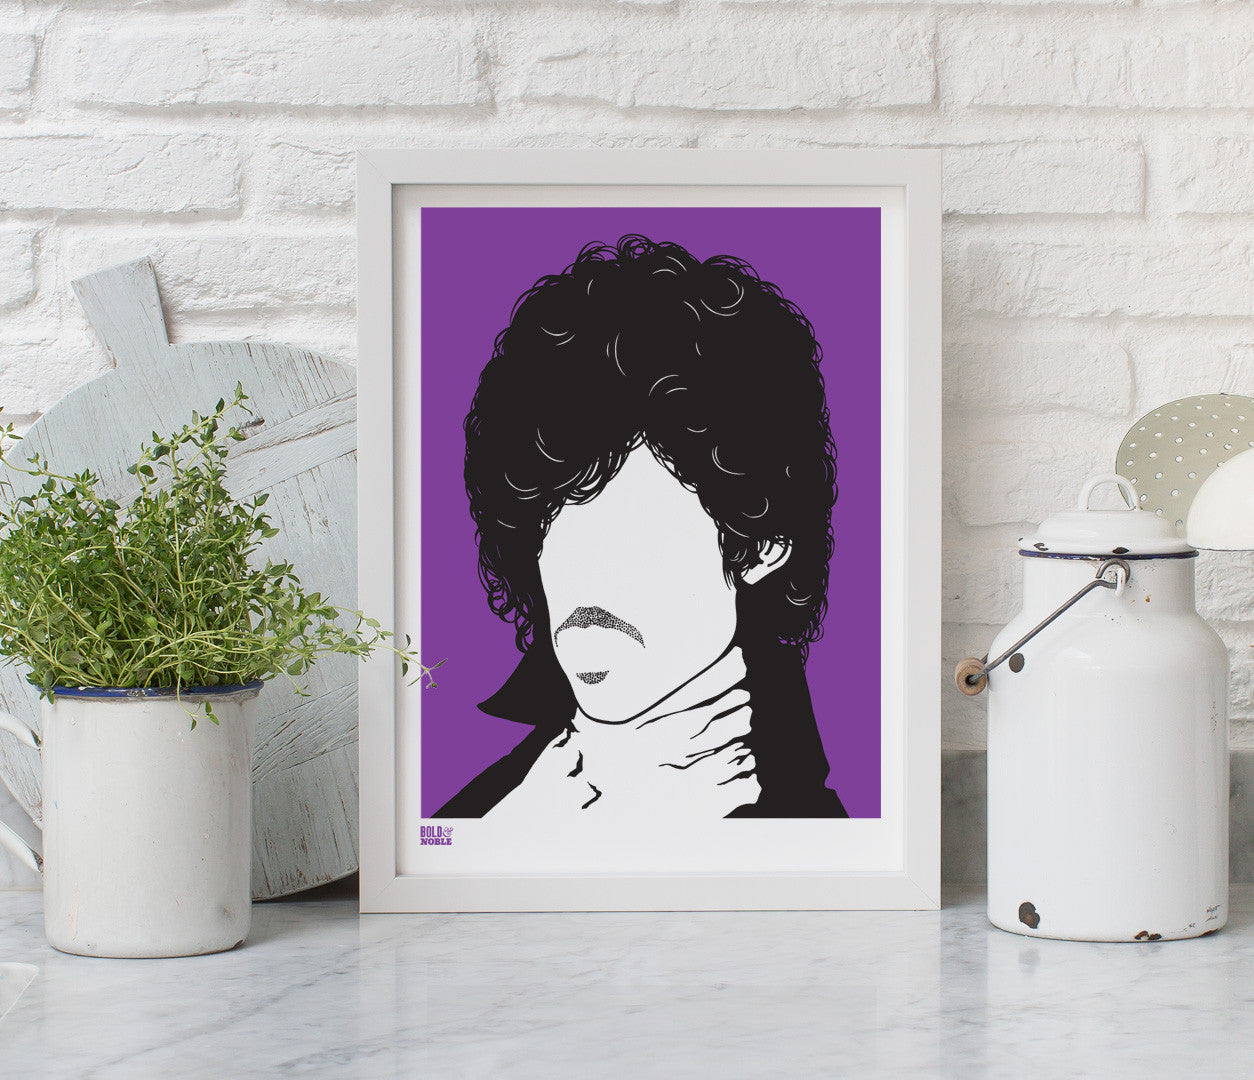 Prince Rock Icon Print in Purple, fits into standard size frame or can be bespoke framed